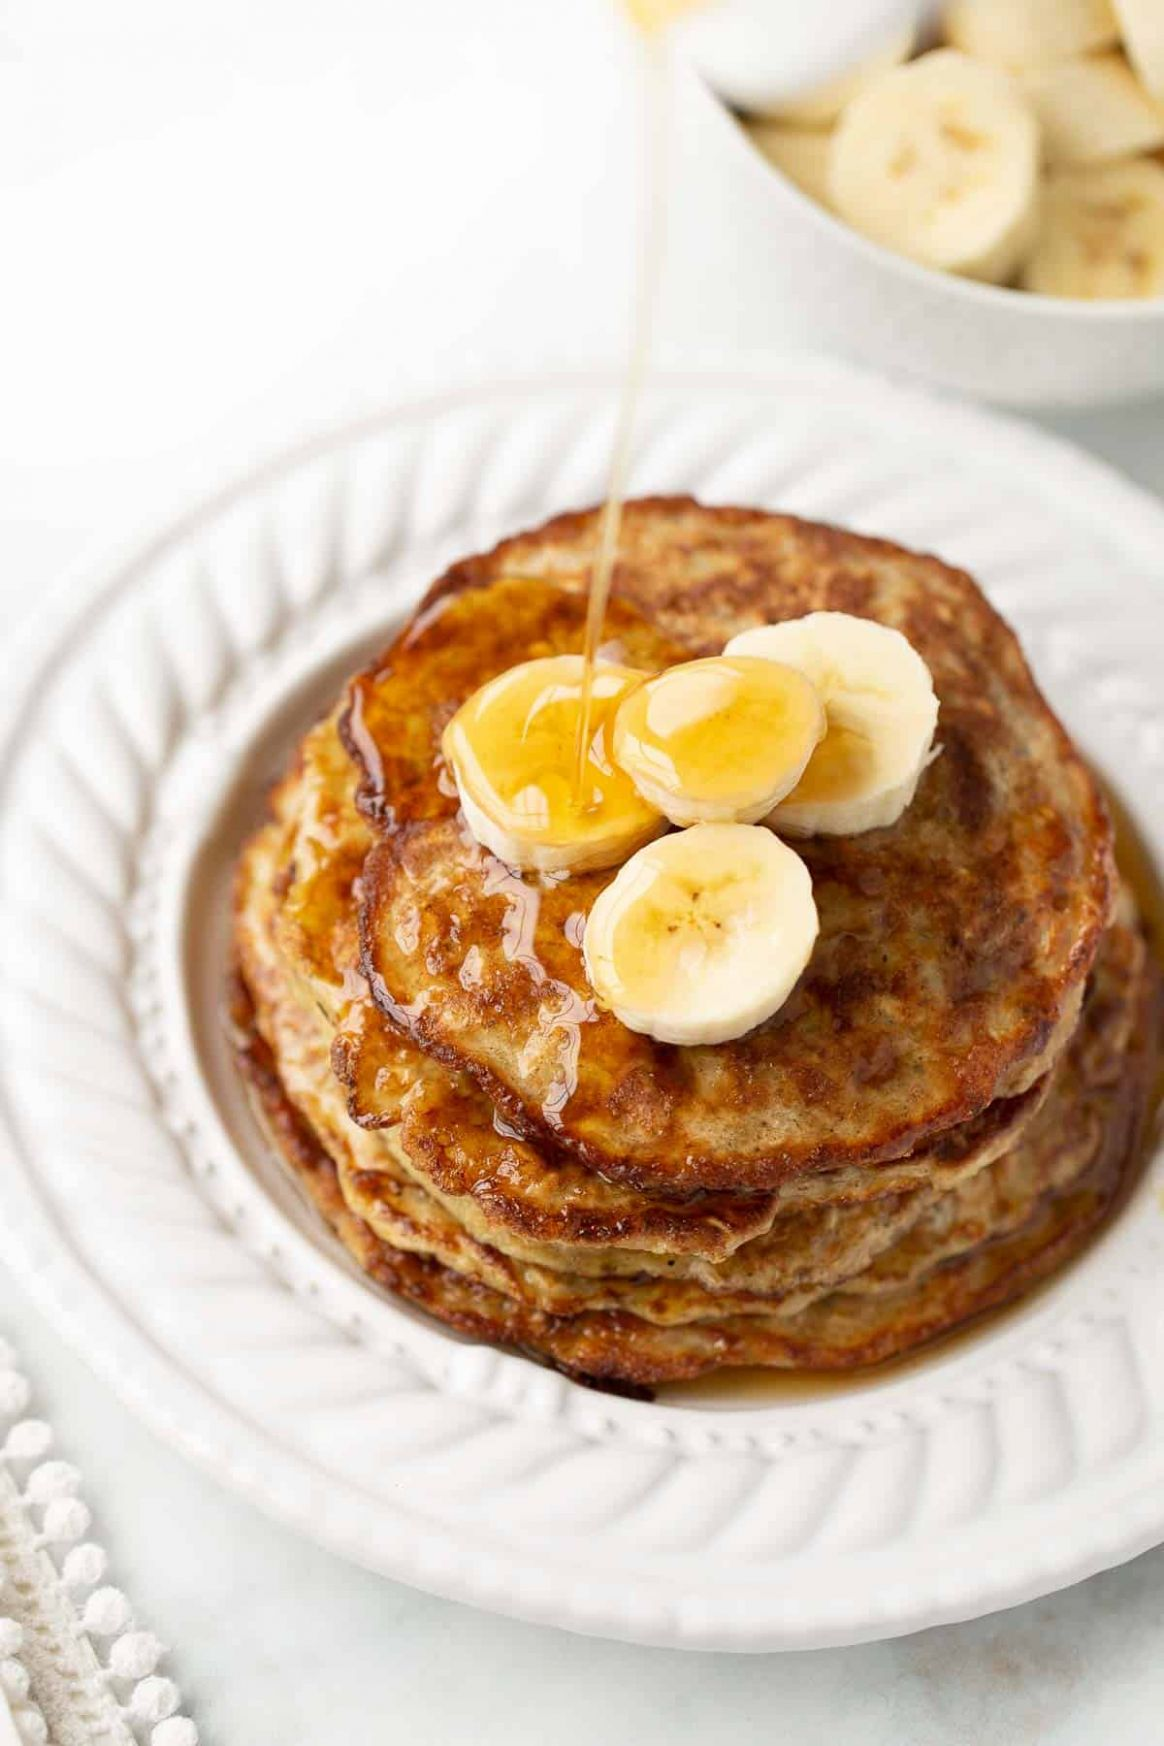 Banana Egg Oat Pancakes - Meaningful Eats - Breakfast Recipes Using Bananas